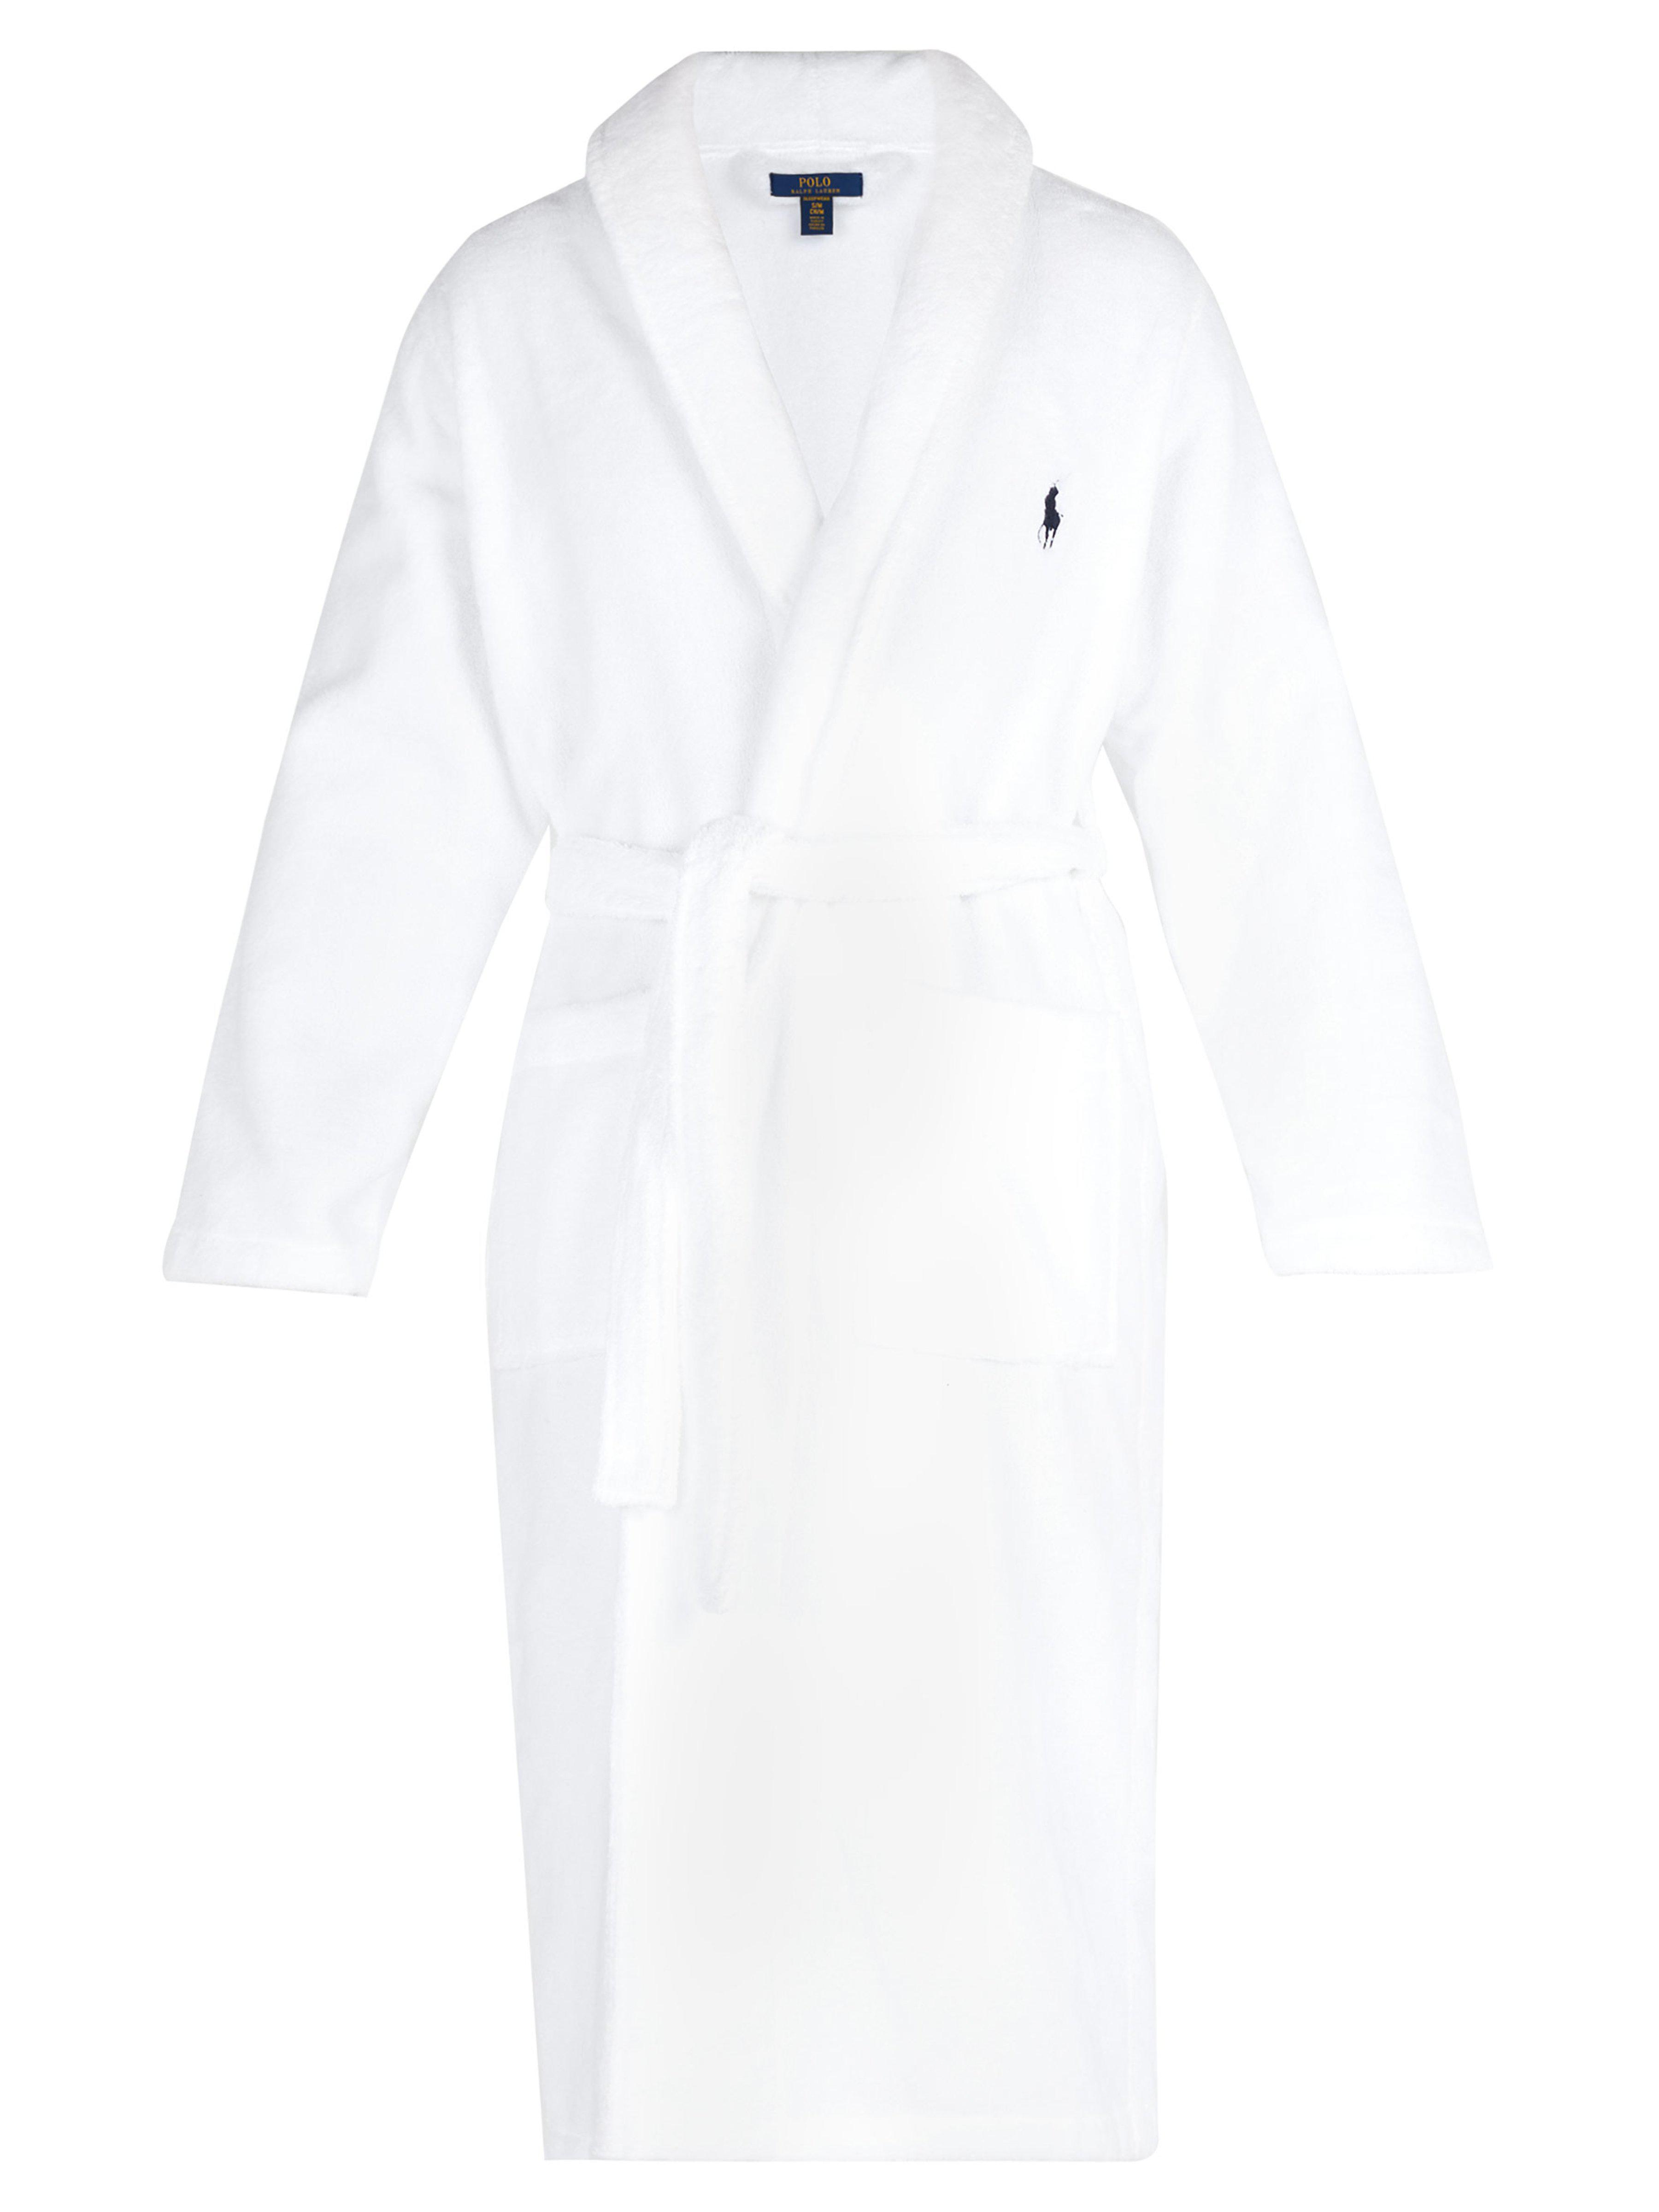 Polo Ralph Lauren Logo Embroidered Terry Towelling Cotton Bathrobe ... f2c51d330